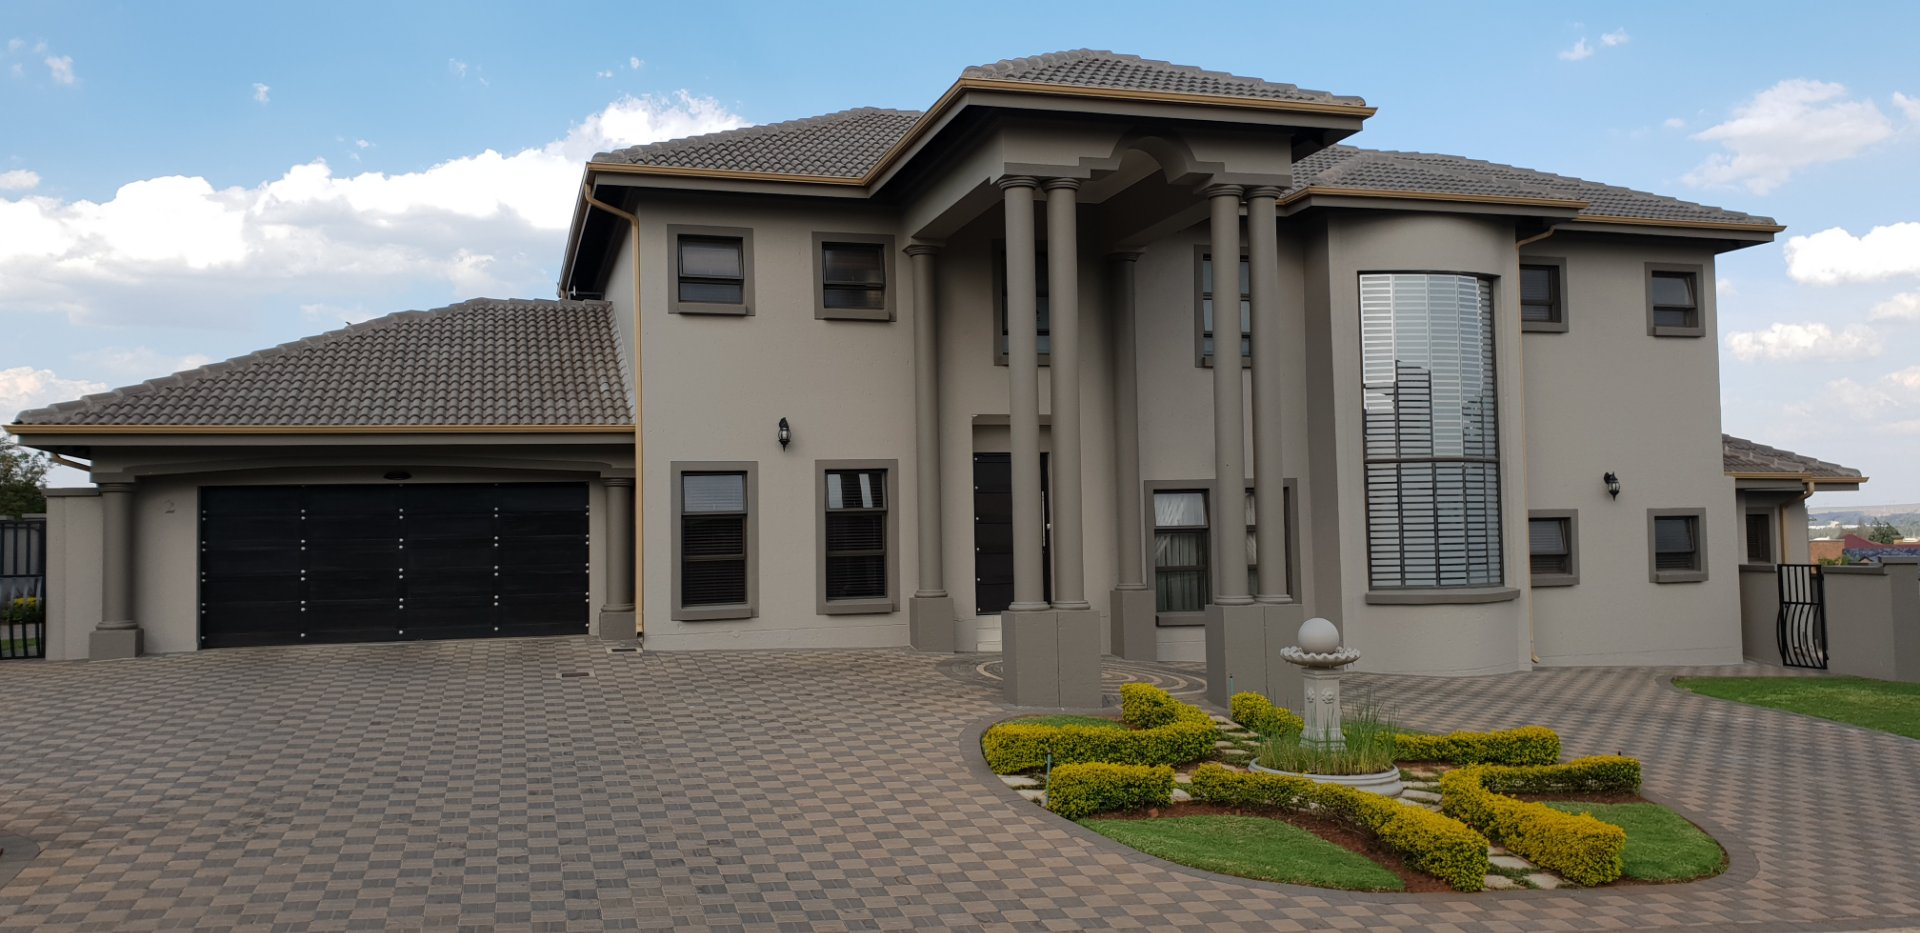 Centurion, Midlands Estate Property  | Houses For Sale Midlands Estate, Midlands Estate, House 5 bedrooms property for sale Price:5,950,000